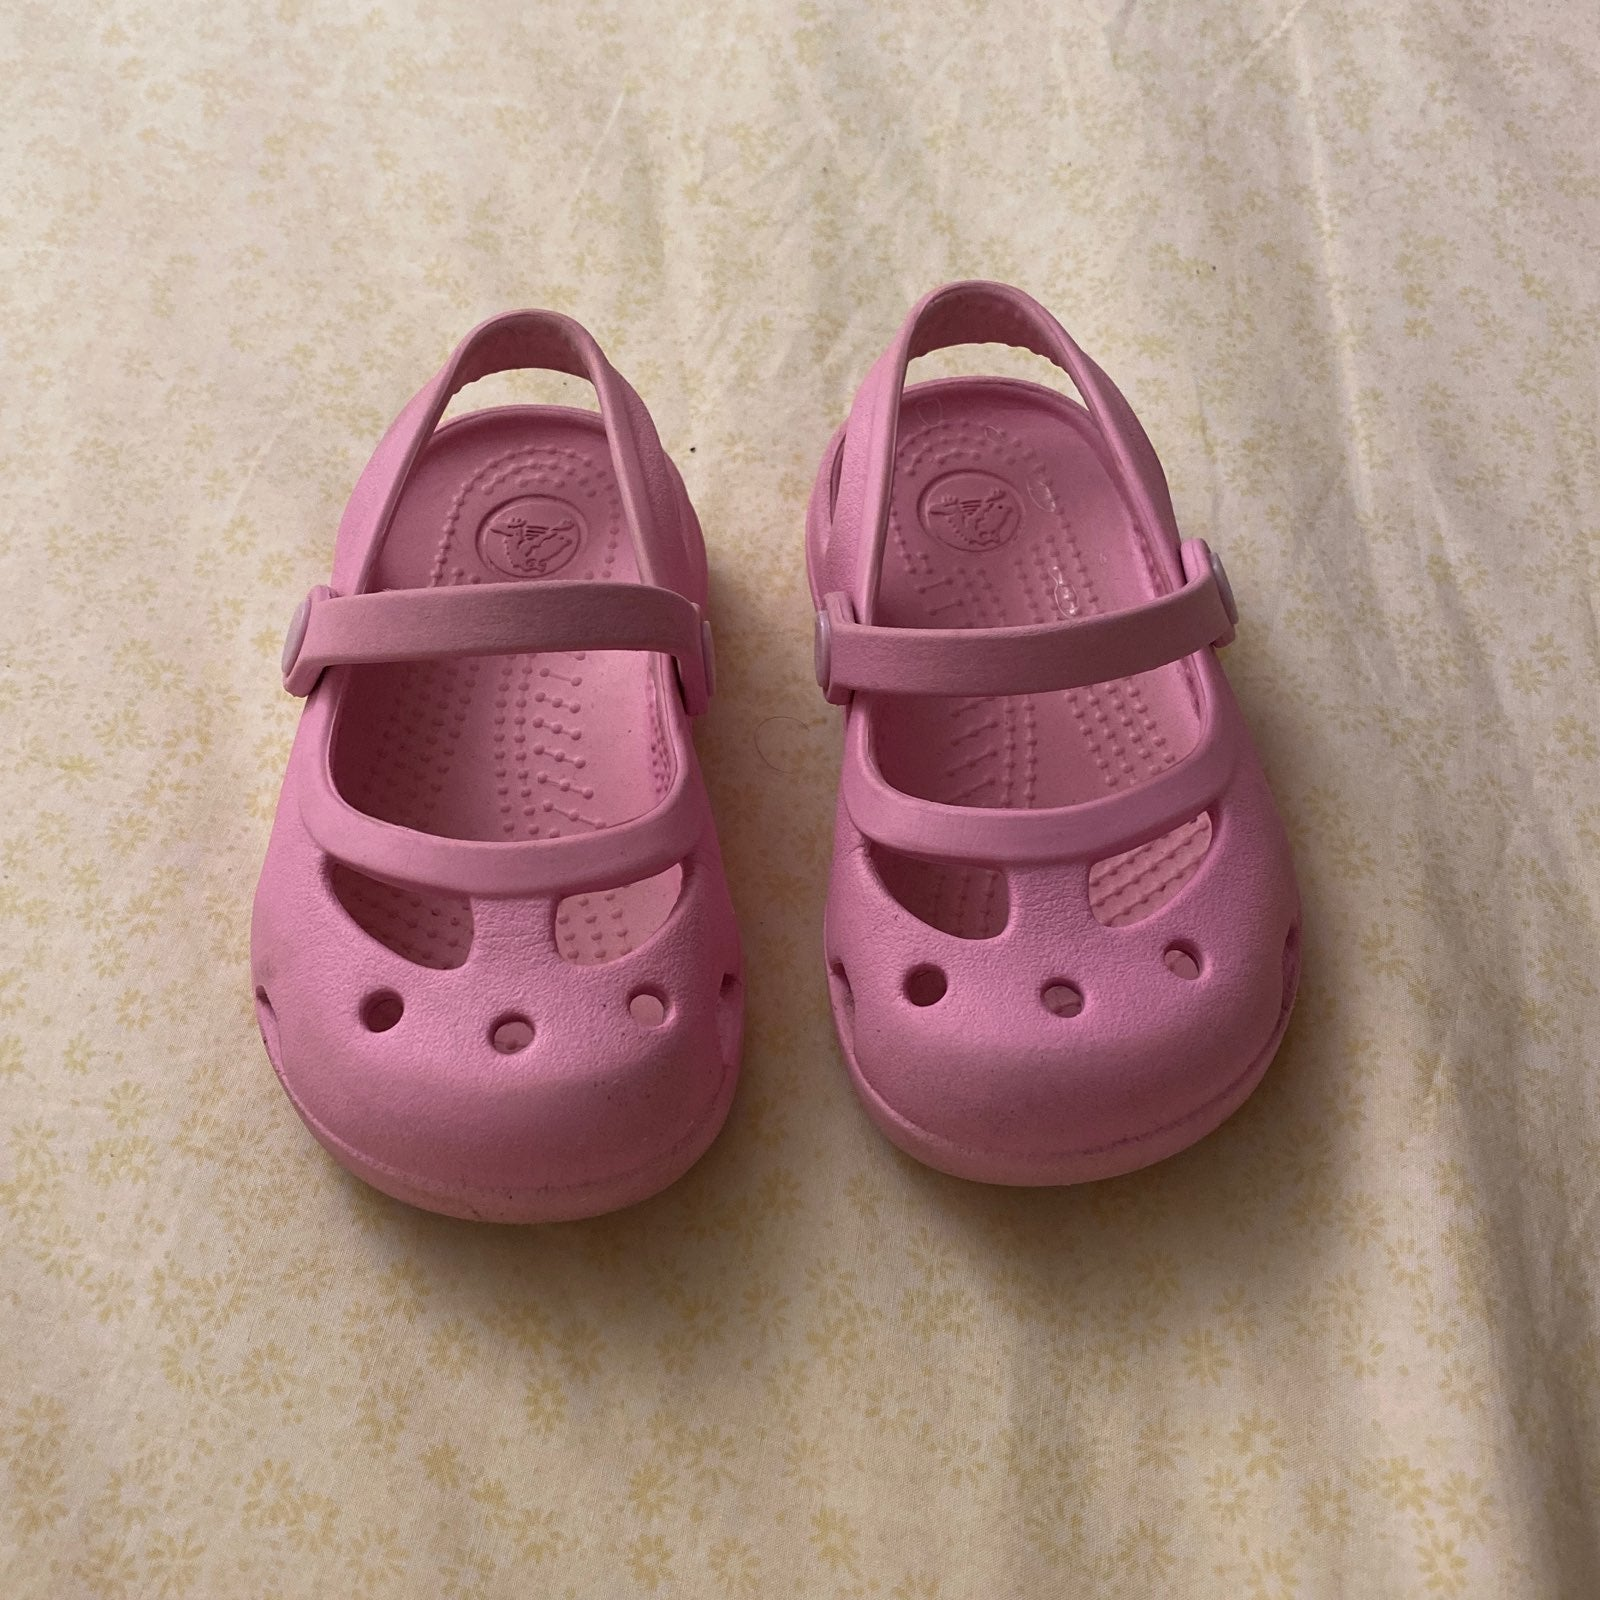 Crocs Mary Janes size 6 Pink